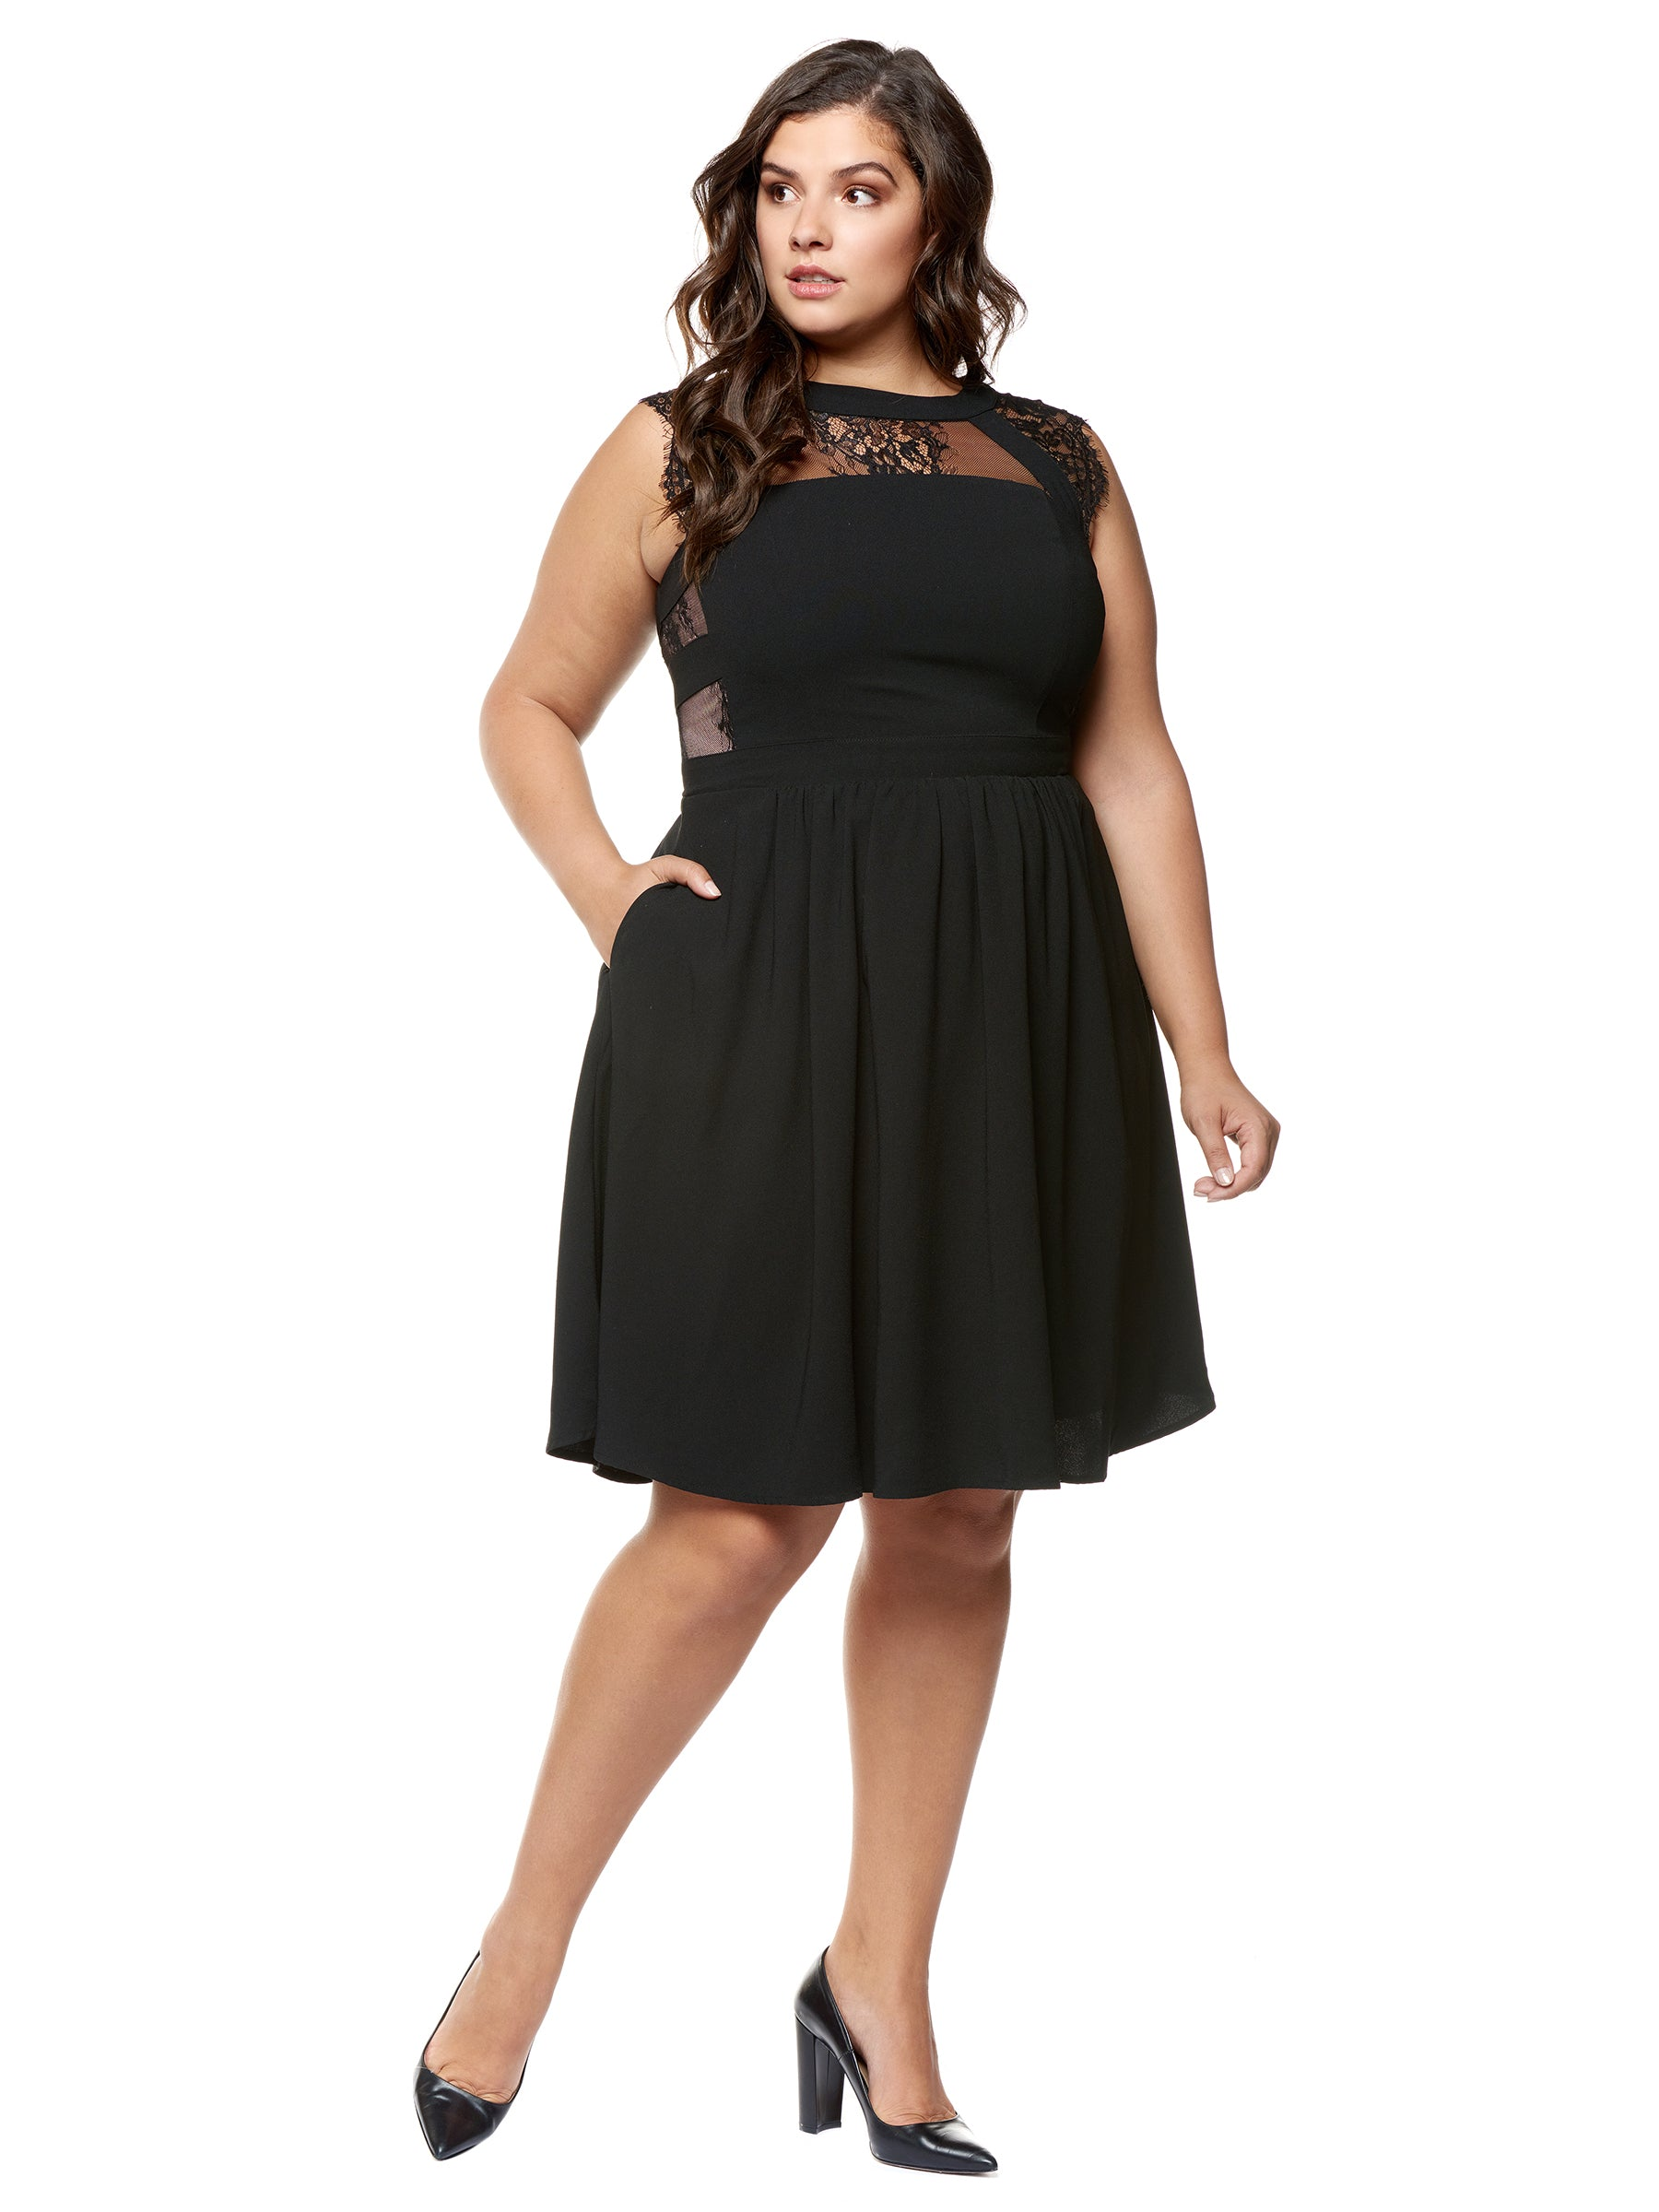 Plus Size Black Sleeveless Lace Dress